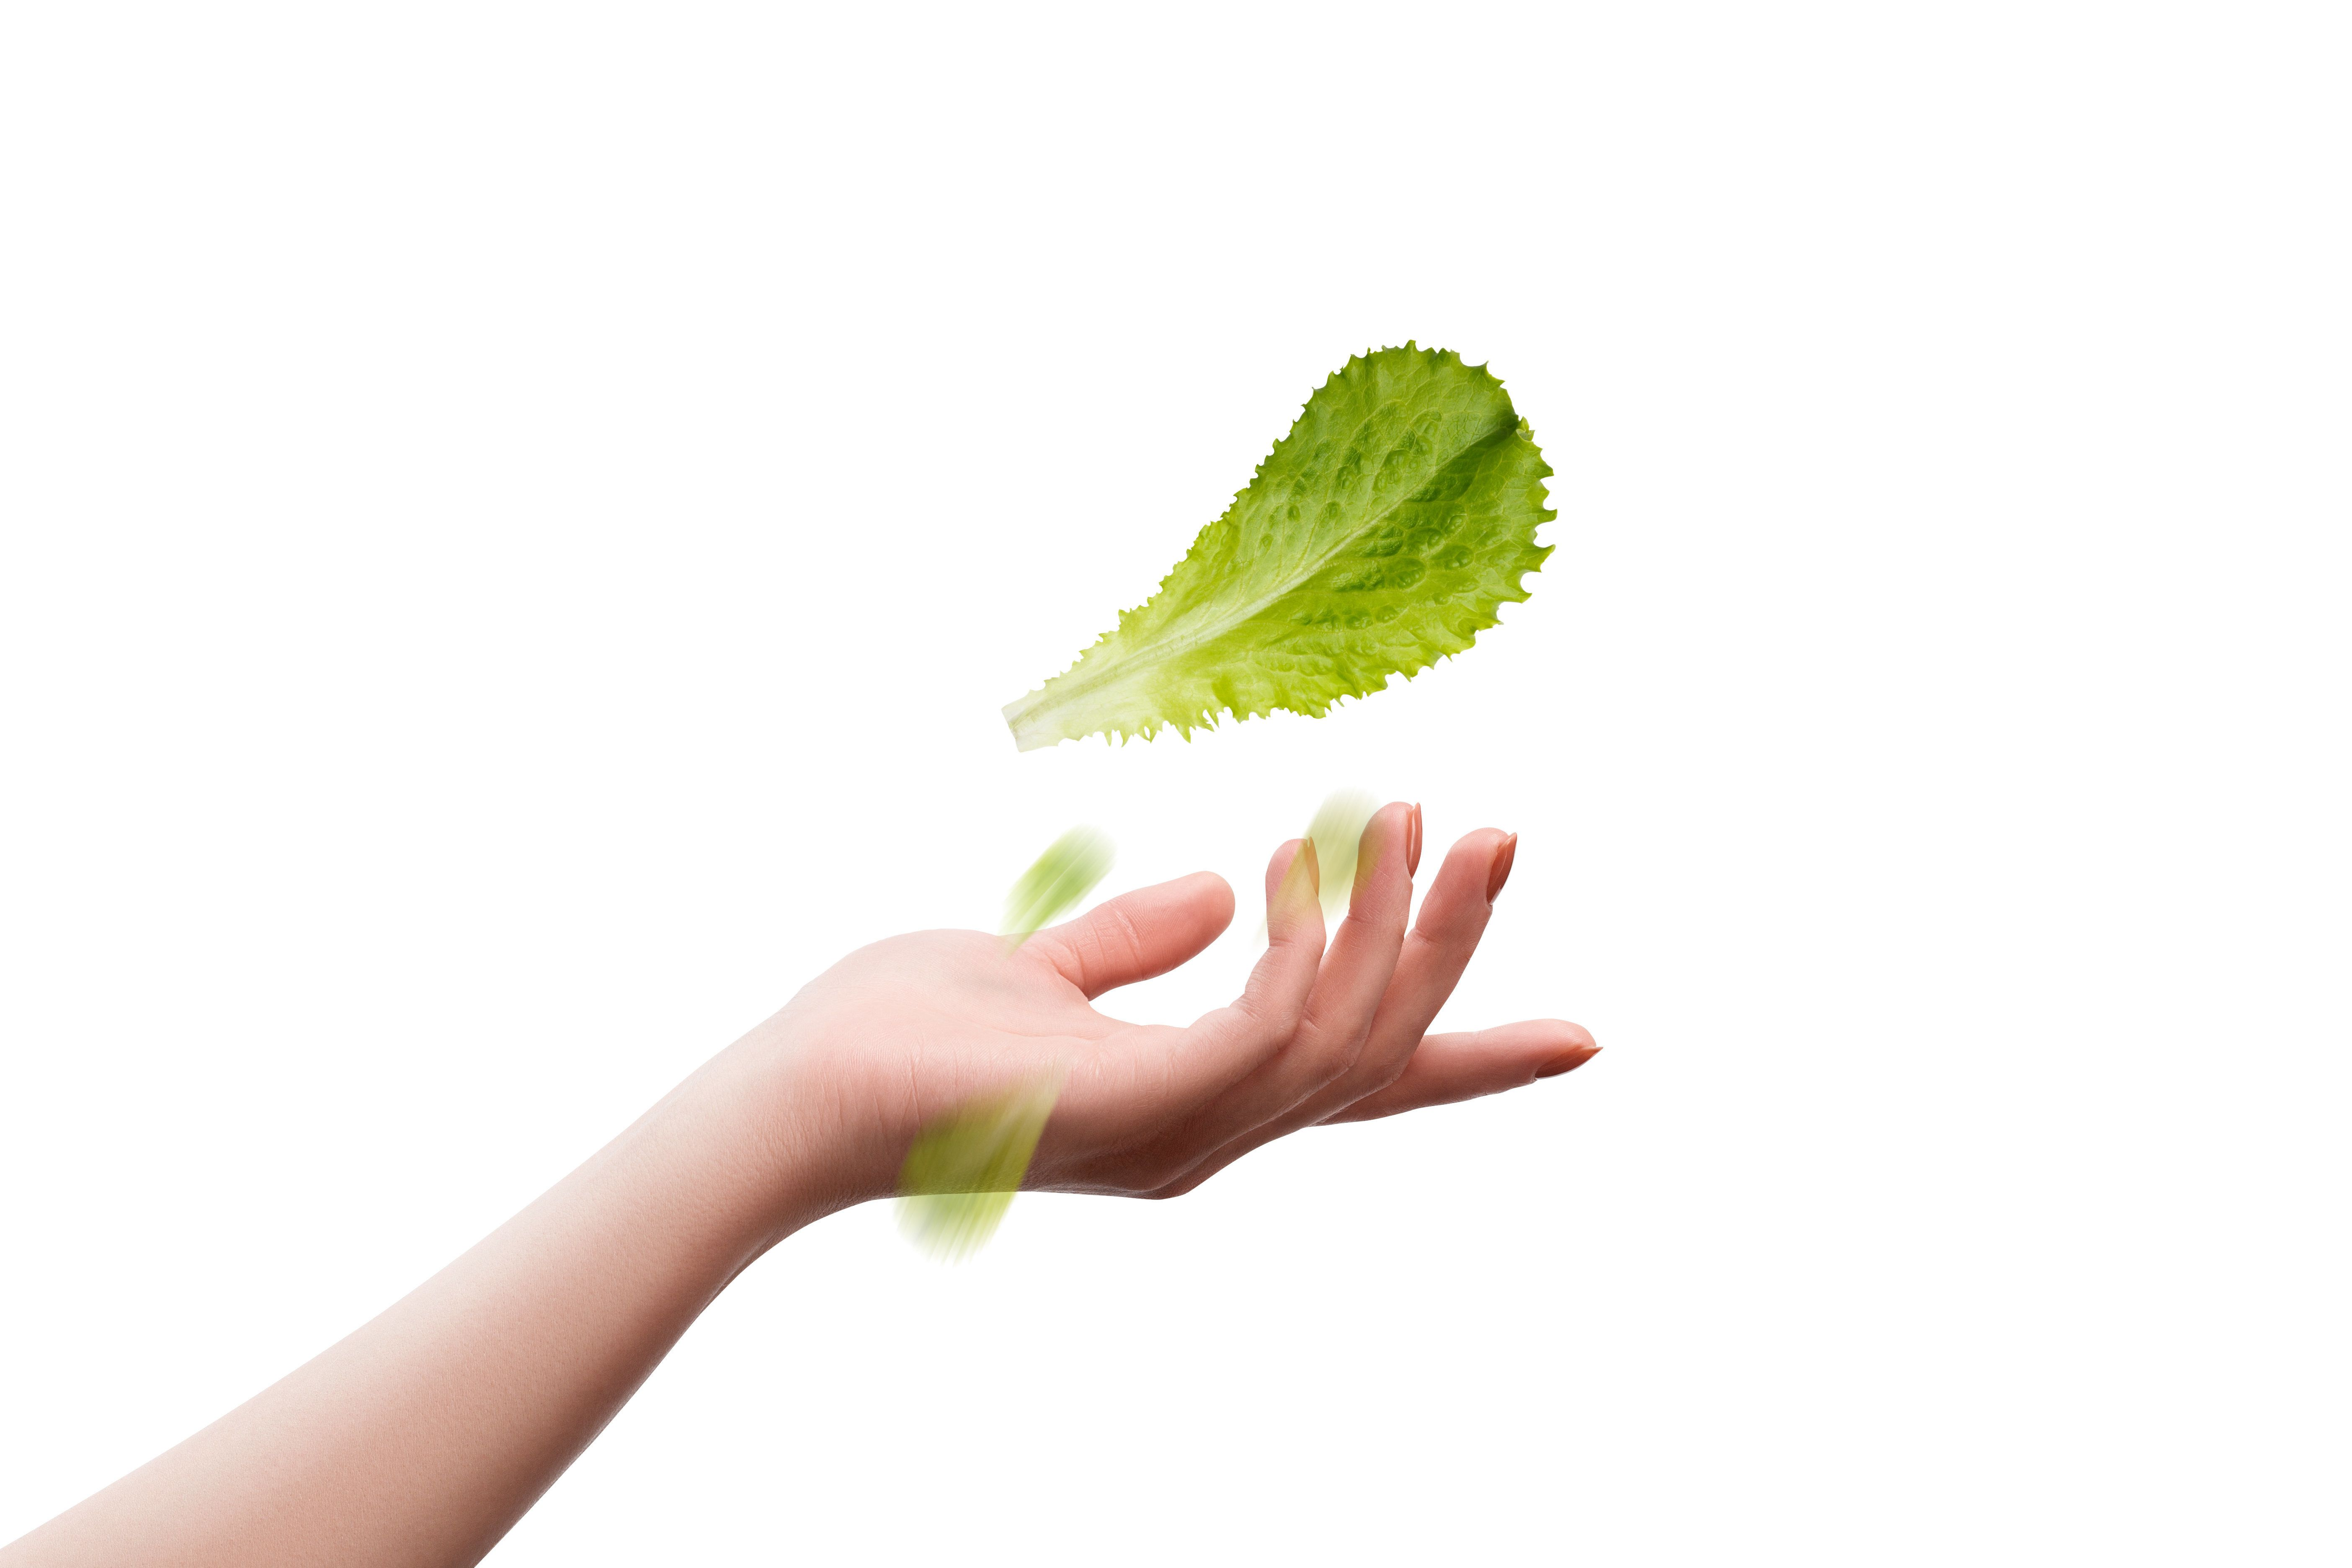 Leaf of lettuce salad in female hand on a white background